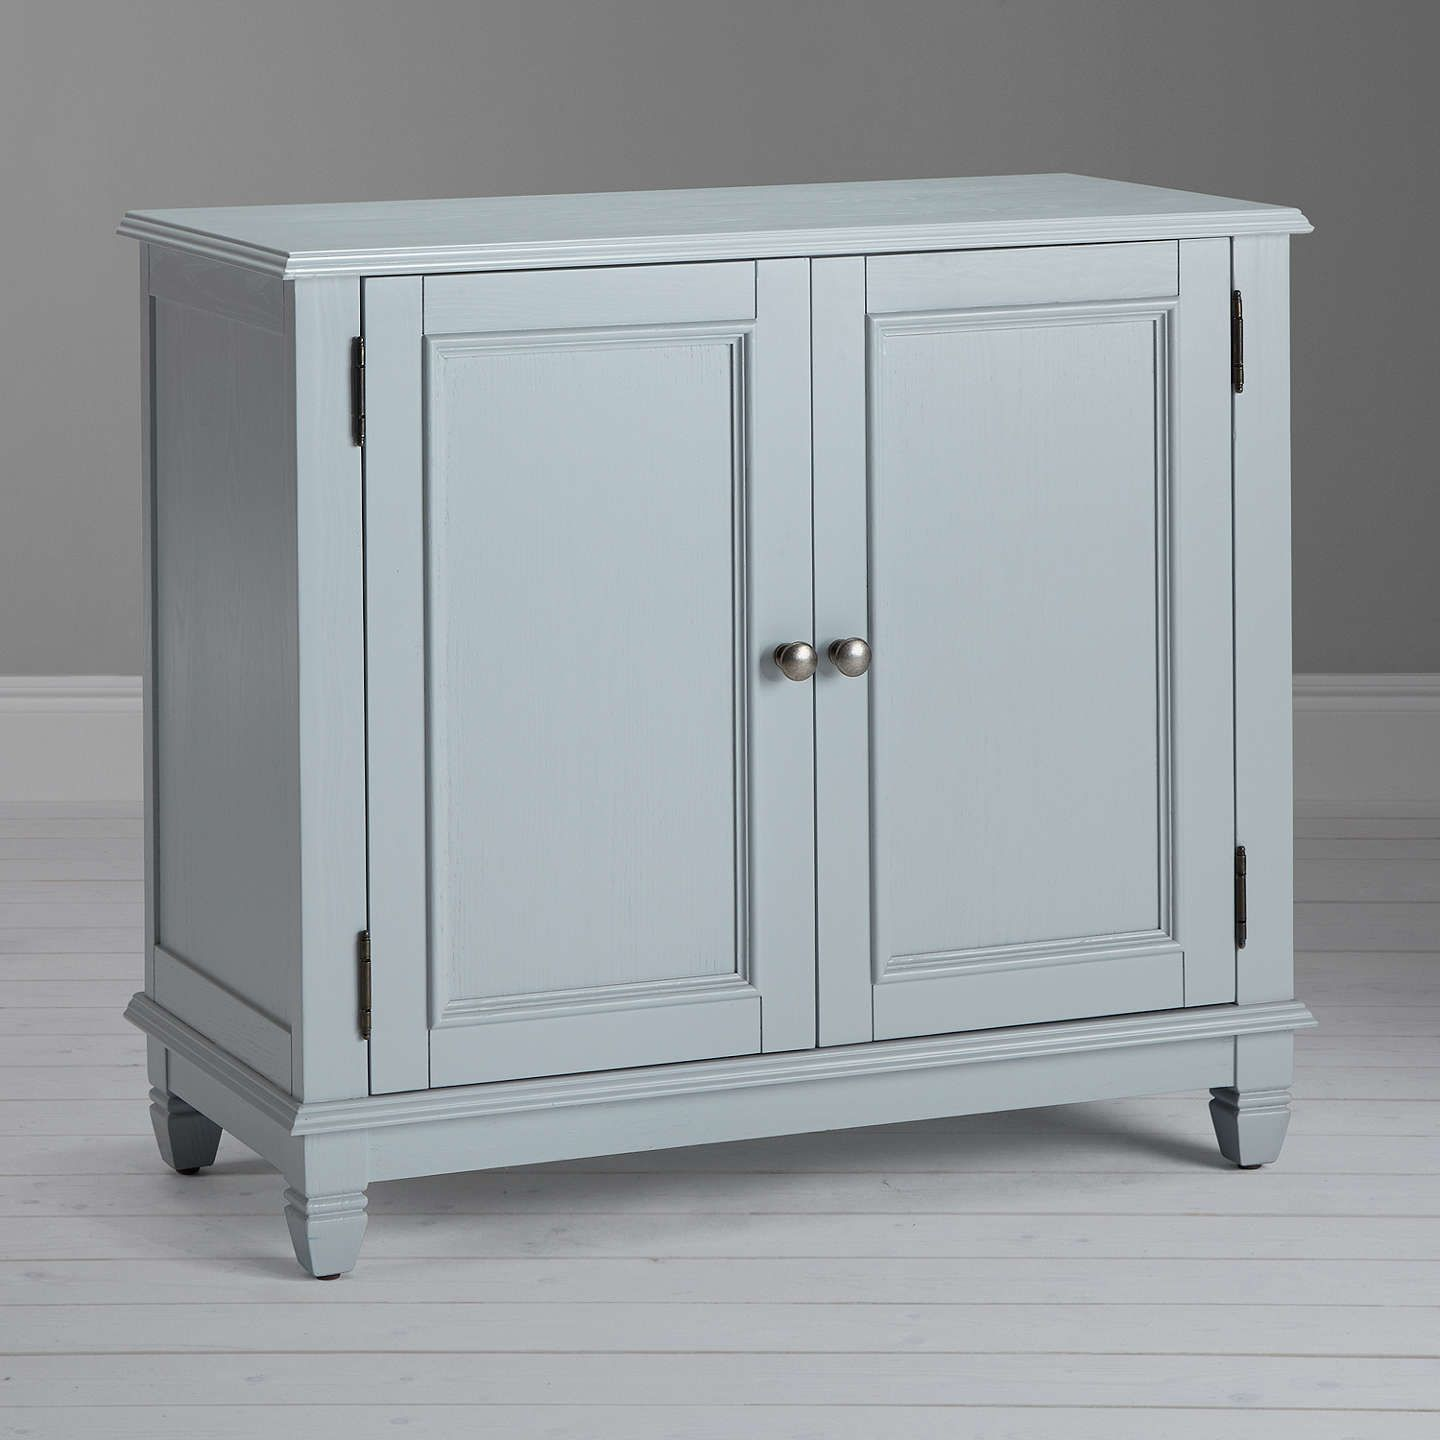 John Lewis Partners Hamilton Storage Cupboard Grey Cupboard Storage Storage Cupboard